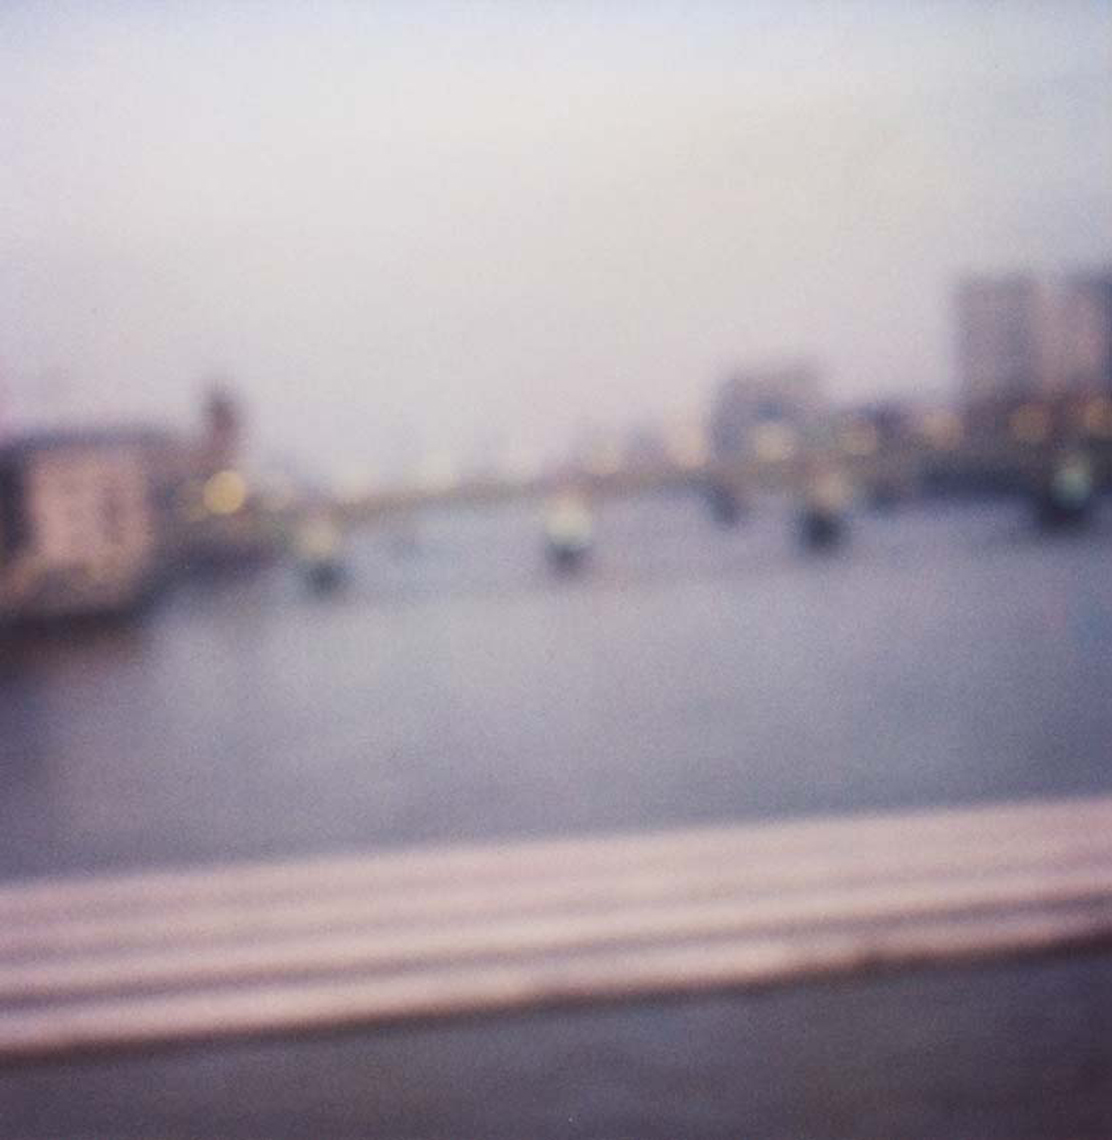 Polaroid, Jennifer Olson j4 London